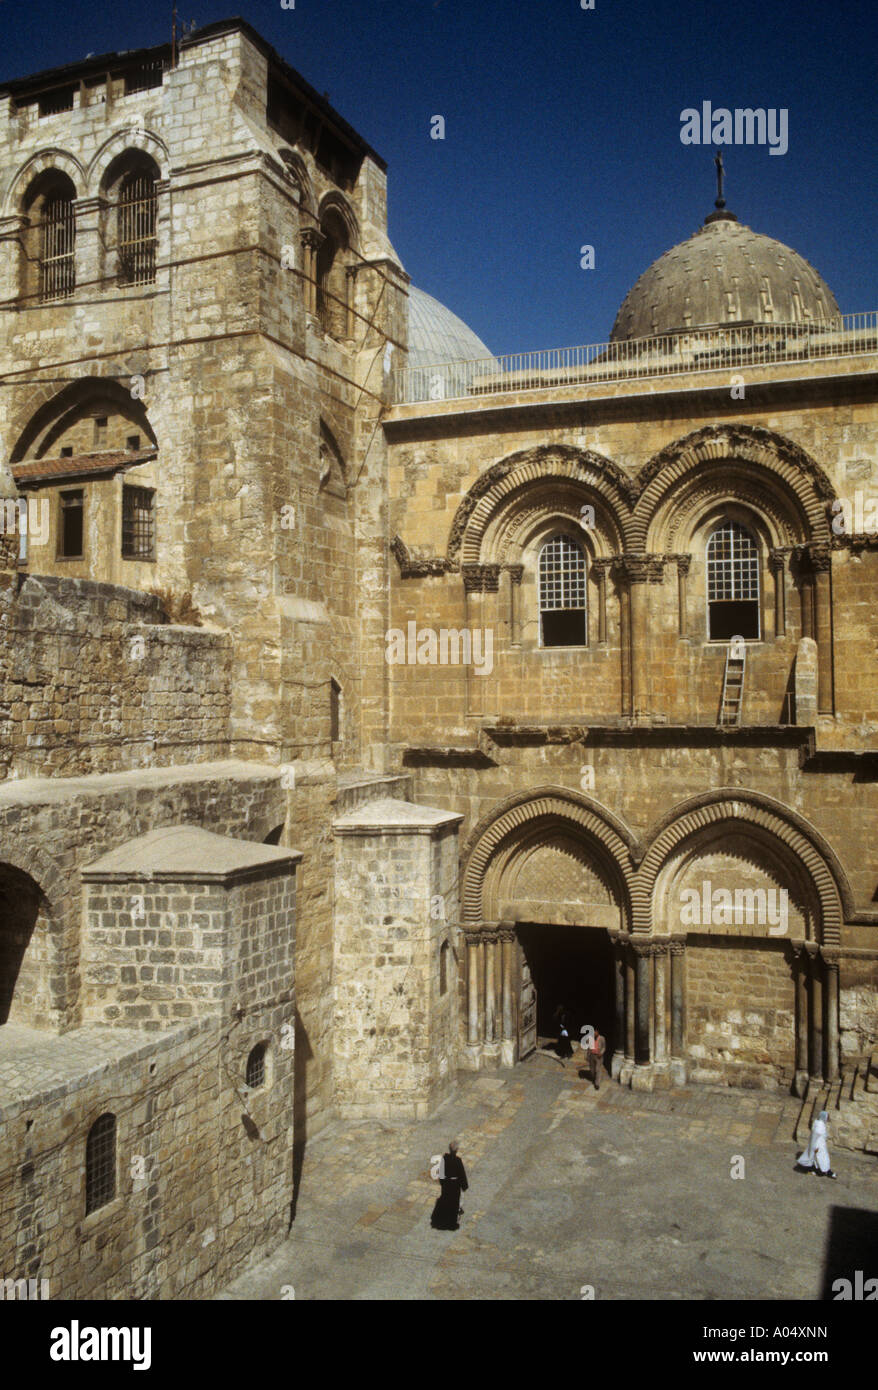 Entrance to the Church of the Holy Sepulchre in Jerusalem - Stock Image